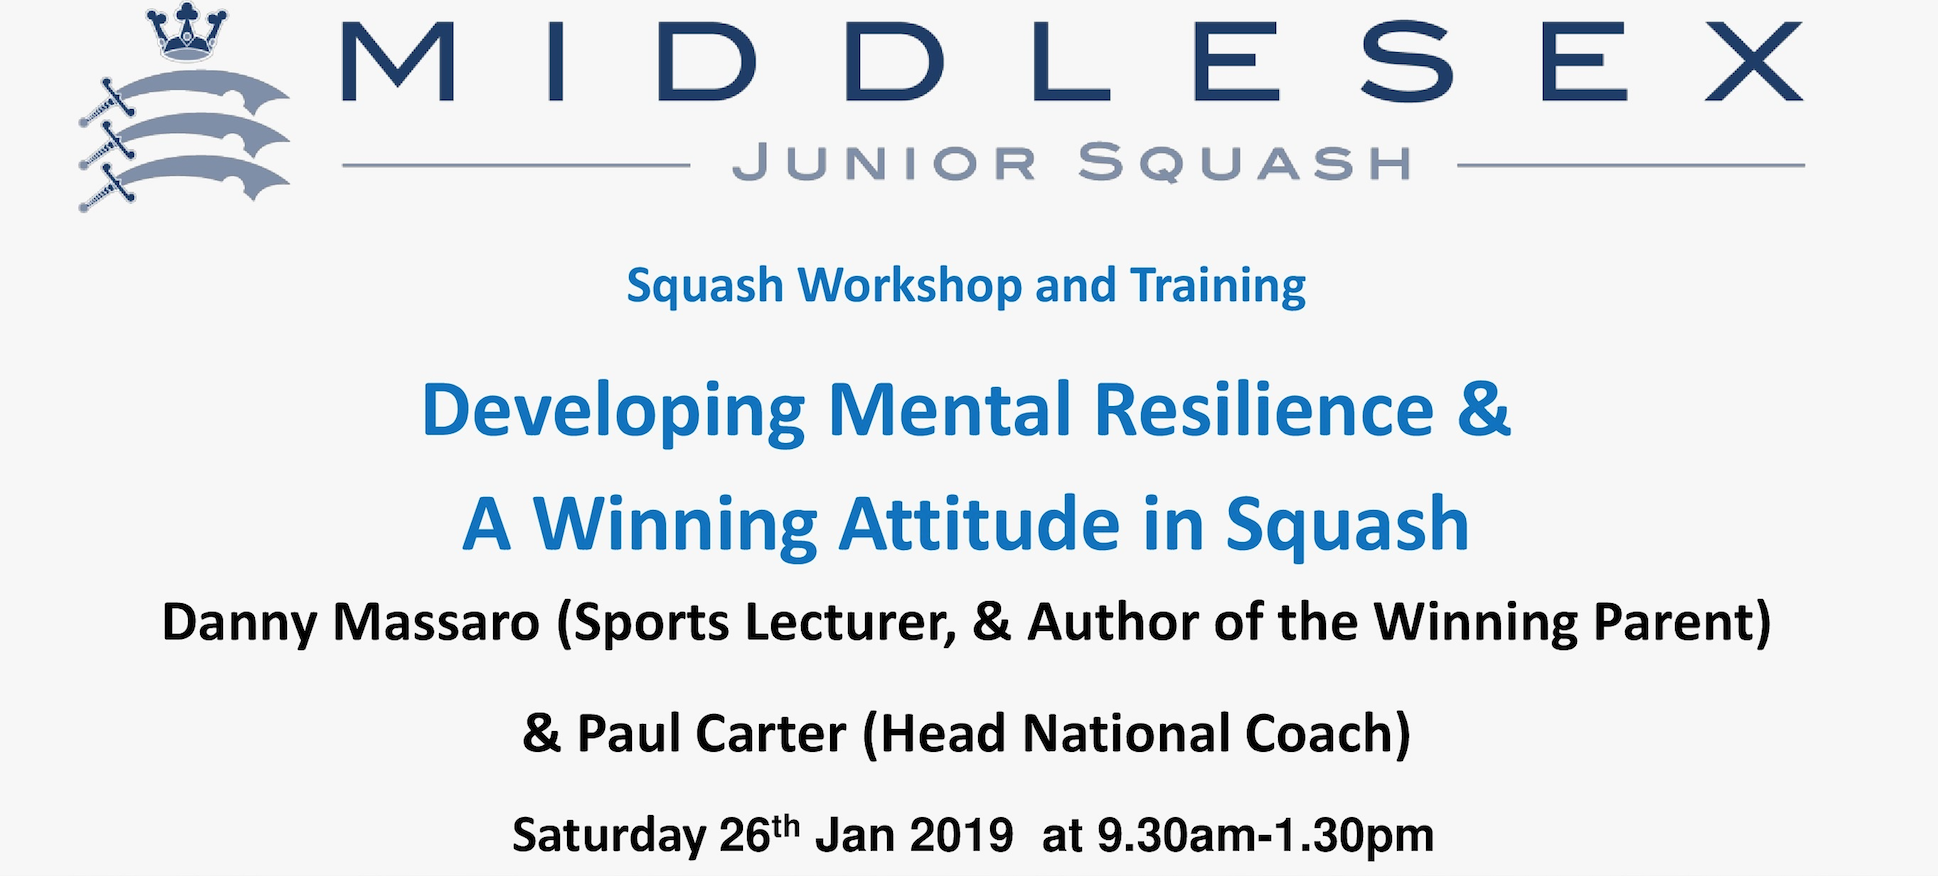 Workshop: Developing Mental Resilience & A Winning Attitude in Squash